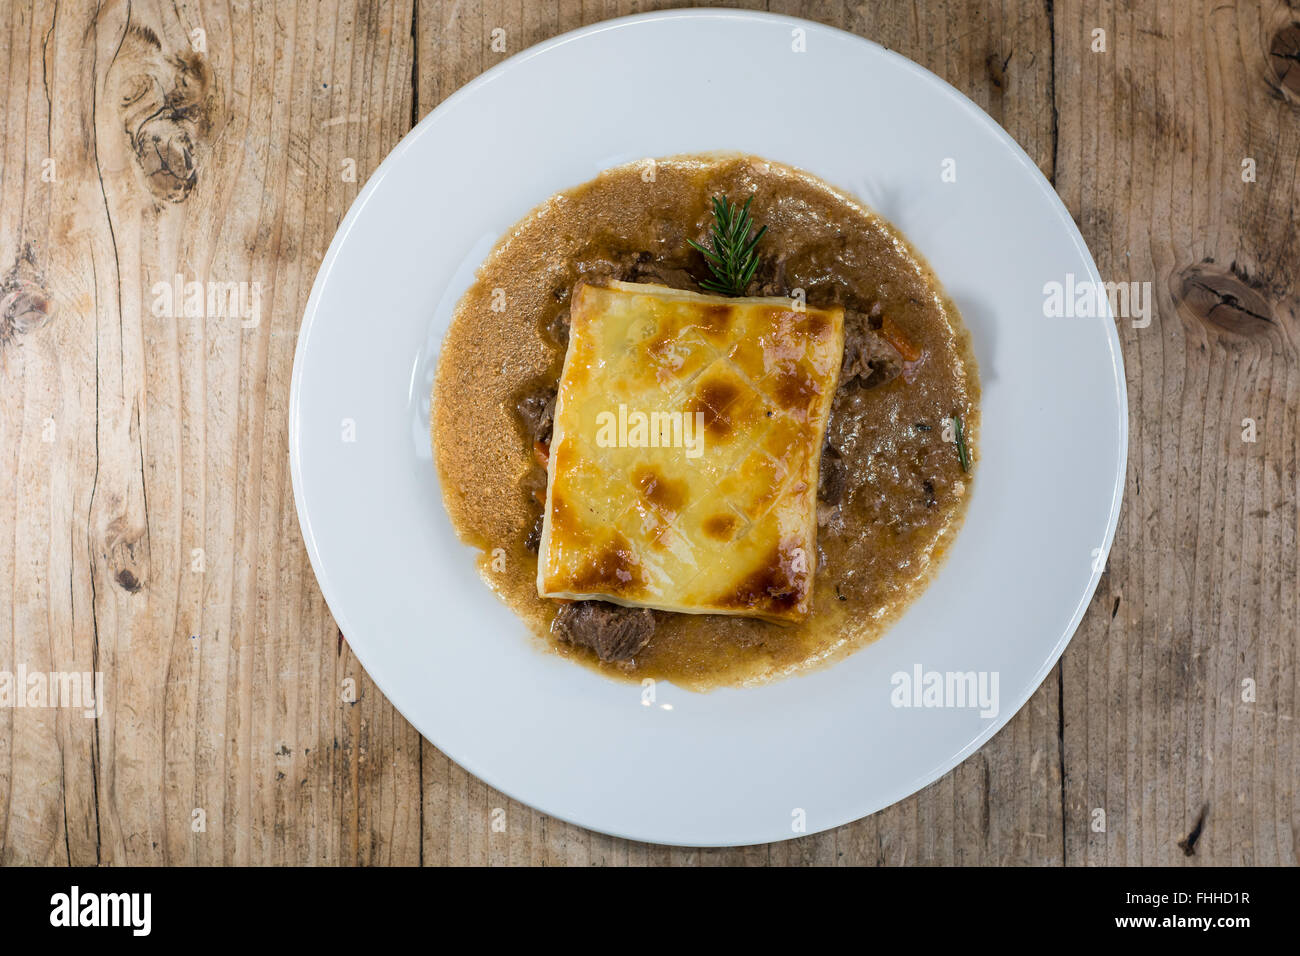 Steak and kidney pie from above. French restaurant prepared cuisine influenced by a traditional English recipe, - Stock Image